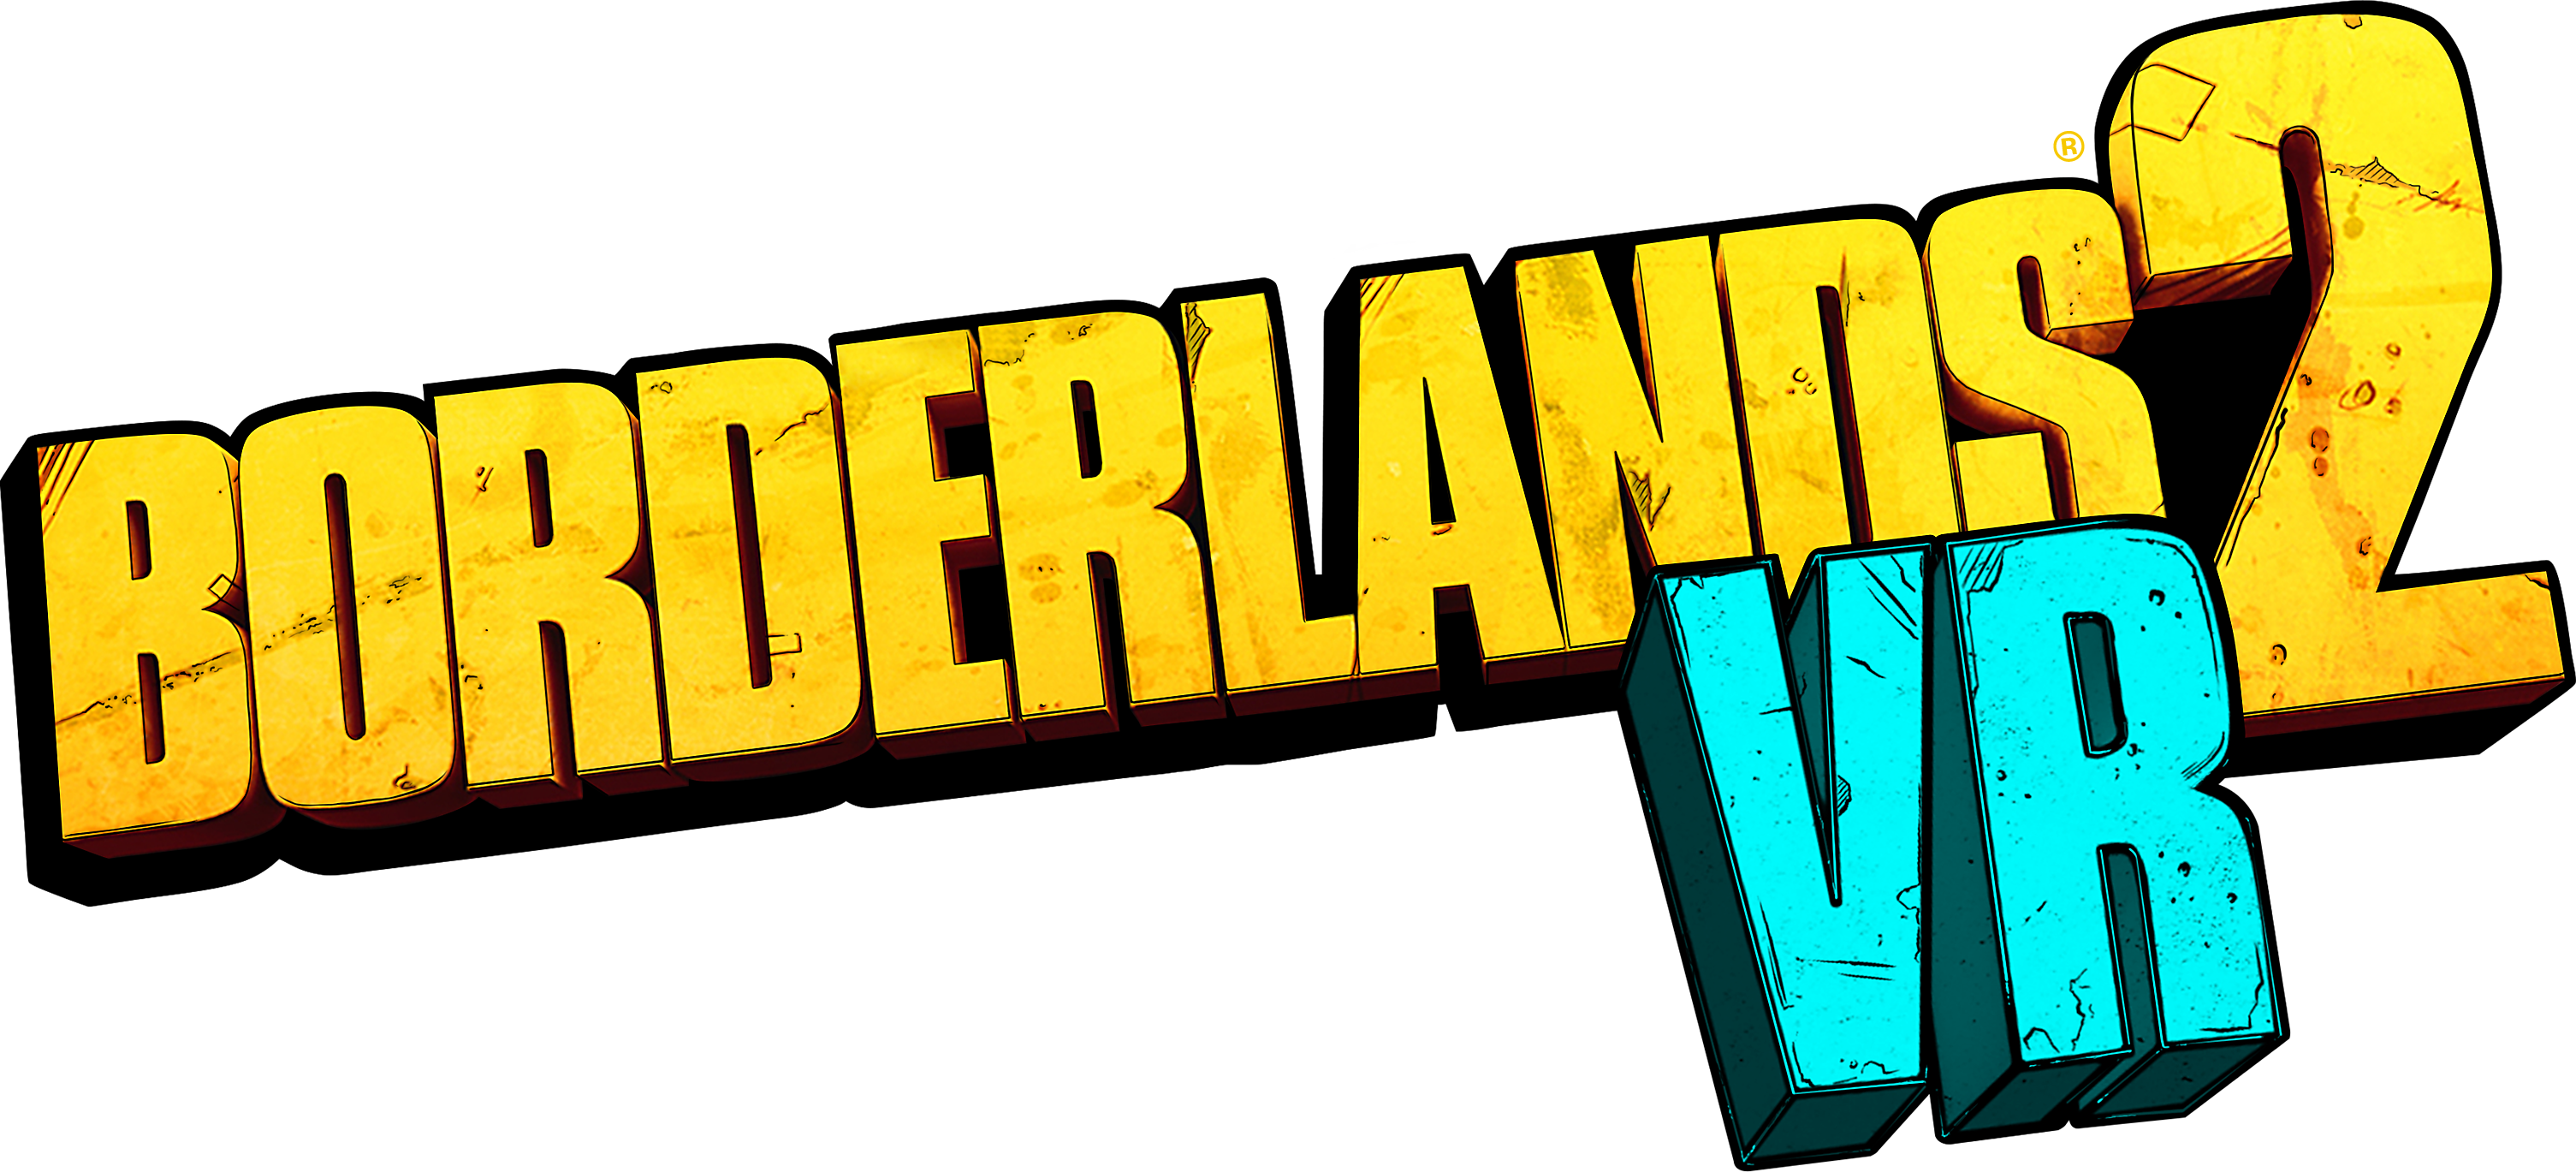 Borderlands 2 VR Game.